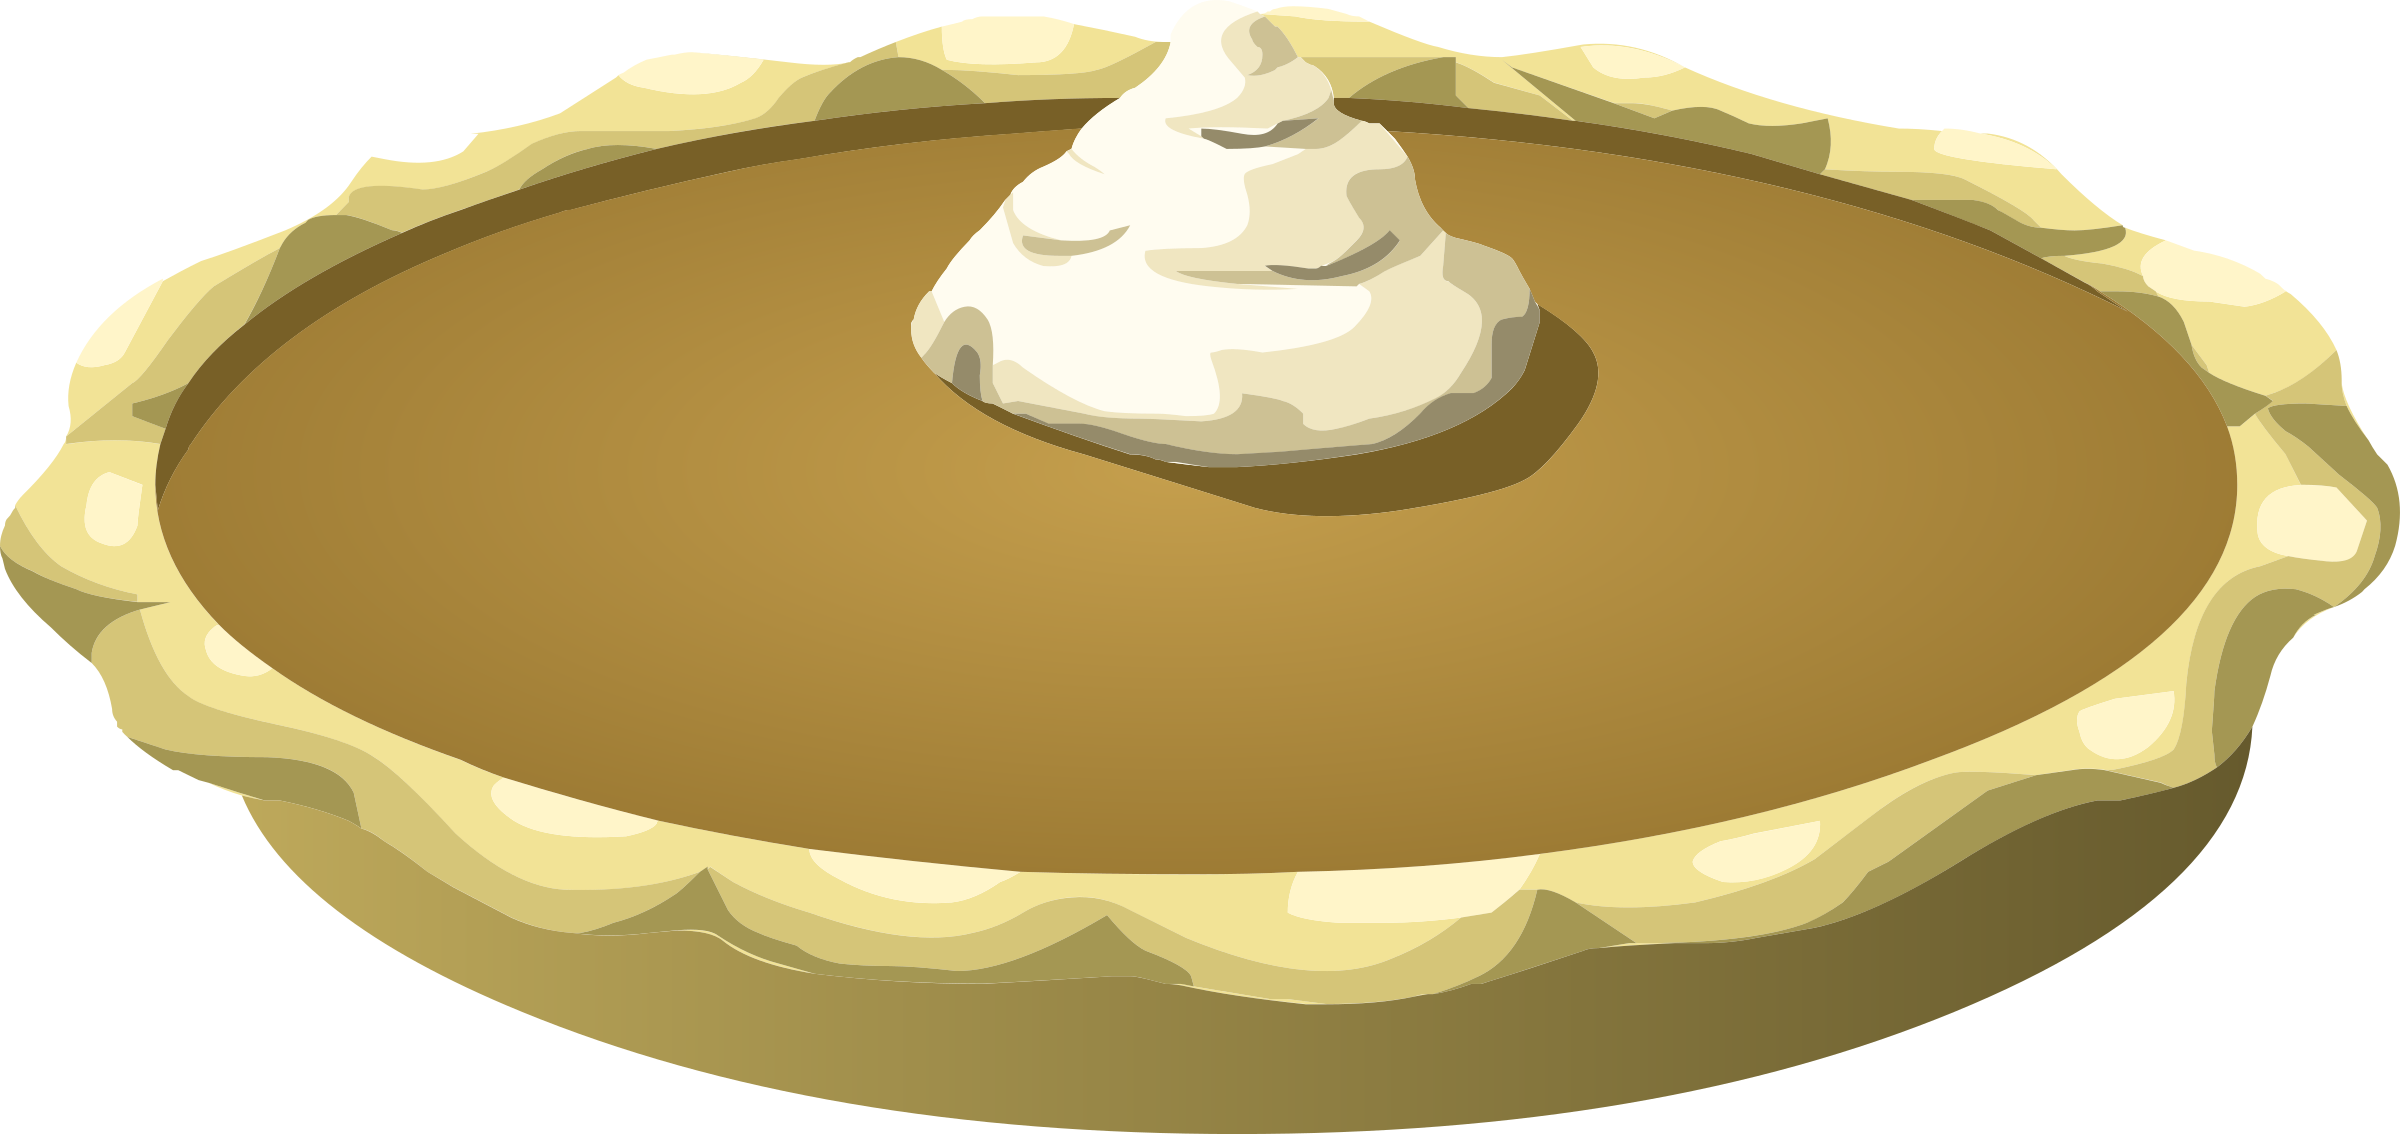 Pumpkin Pie Clipart - Clipart Suggest